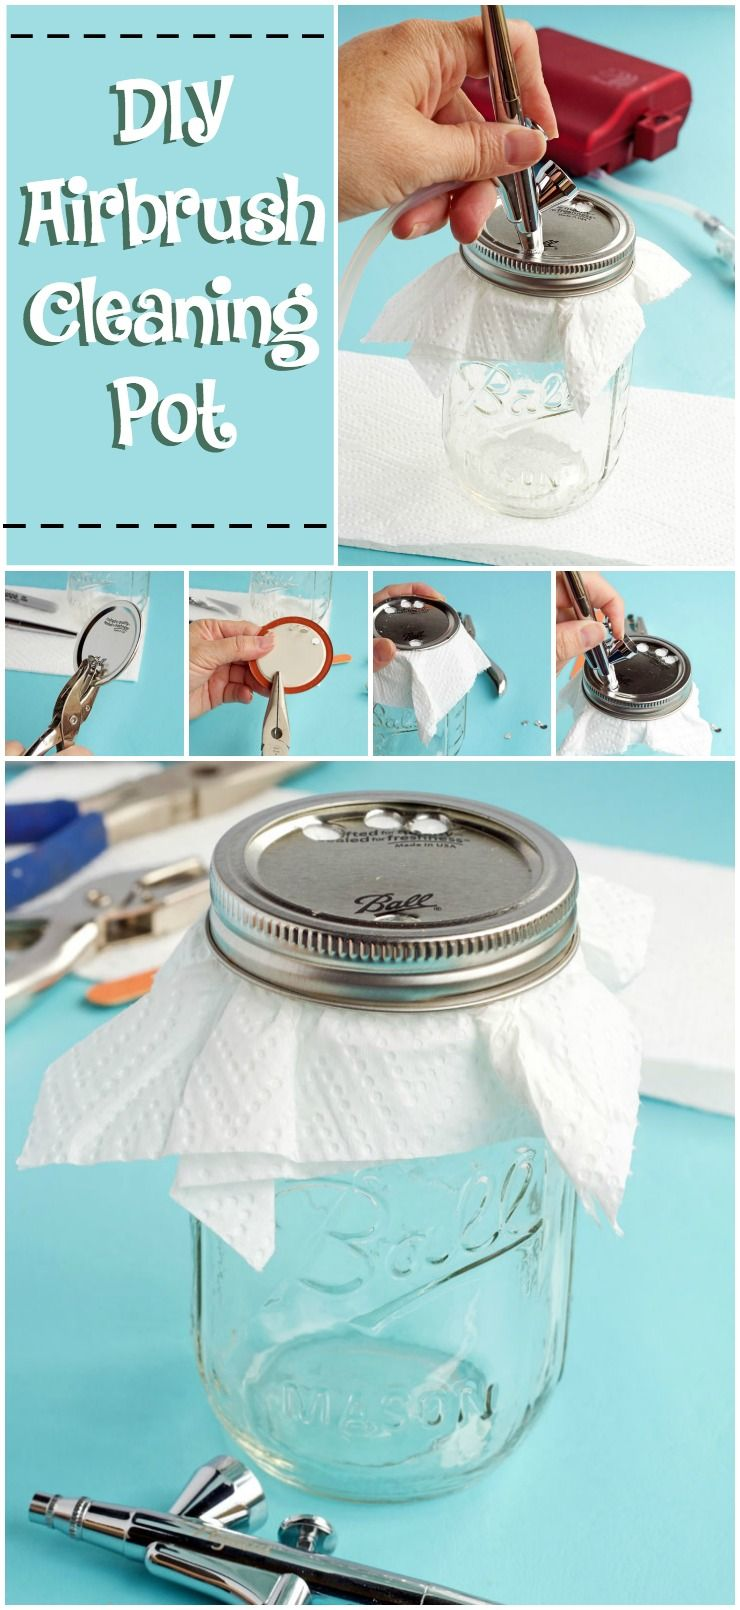 DIY Airbrush Cleaning Pot Airbrush, Airbrush cake